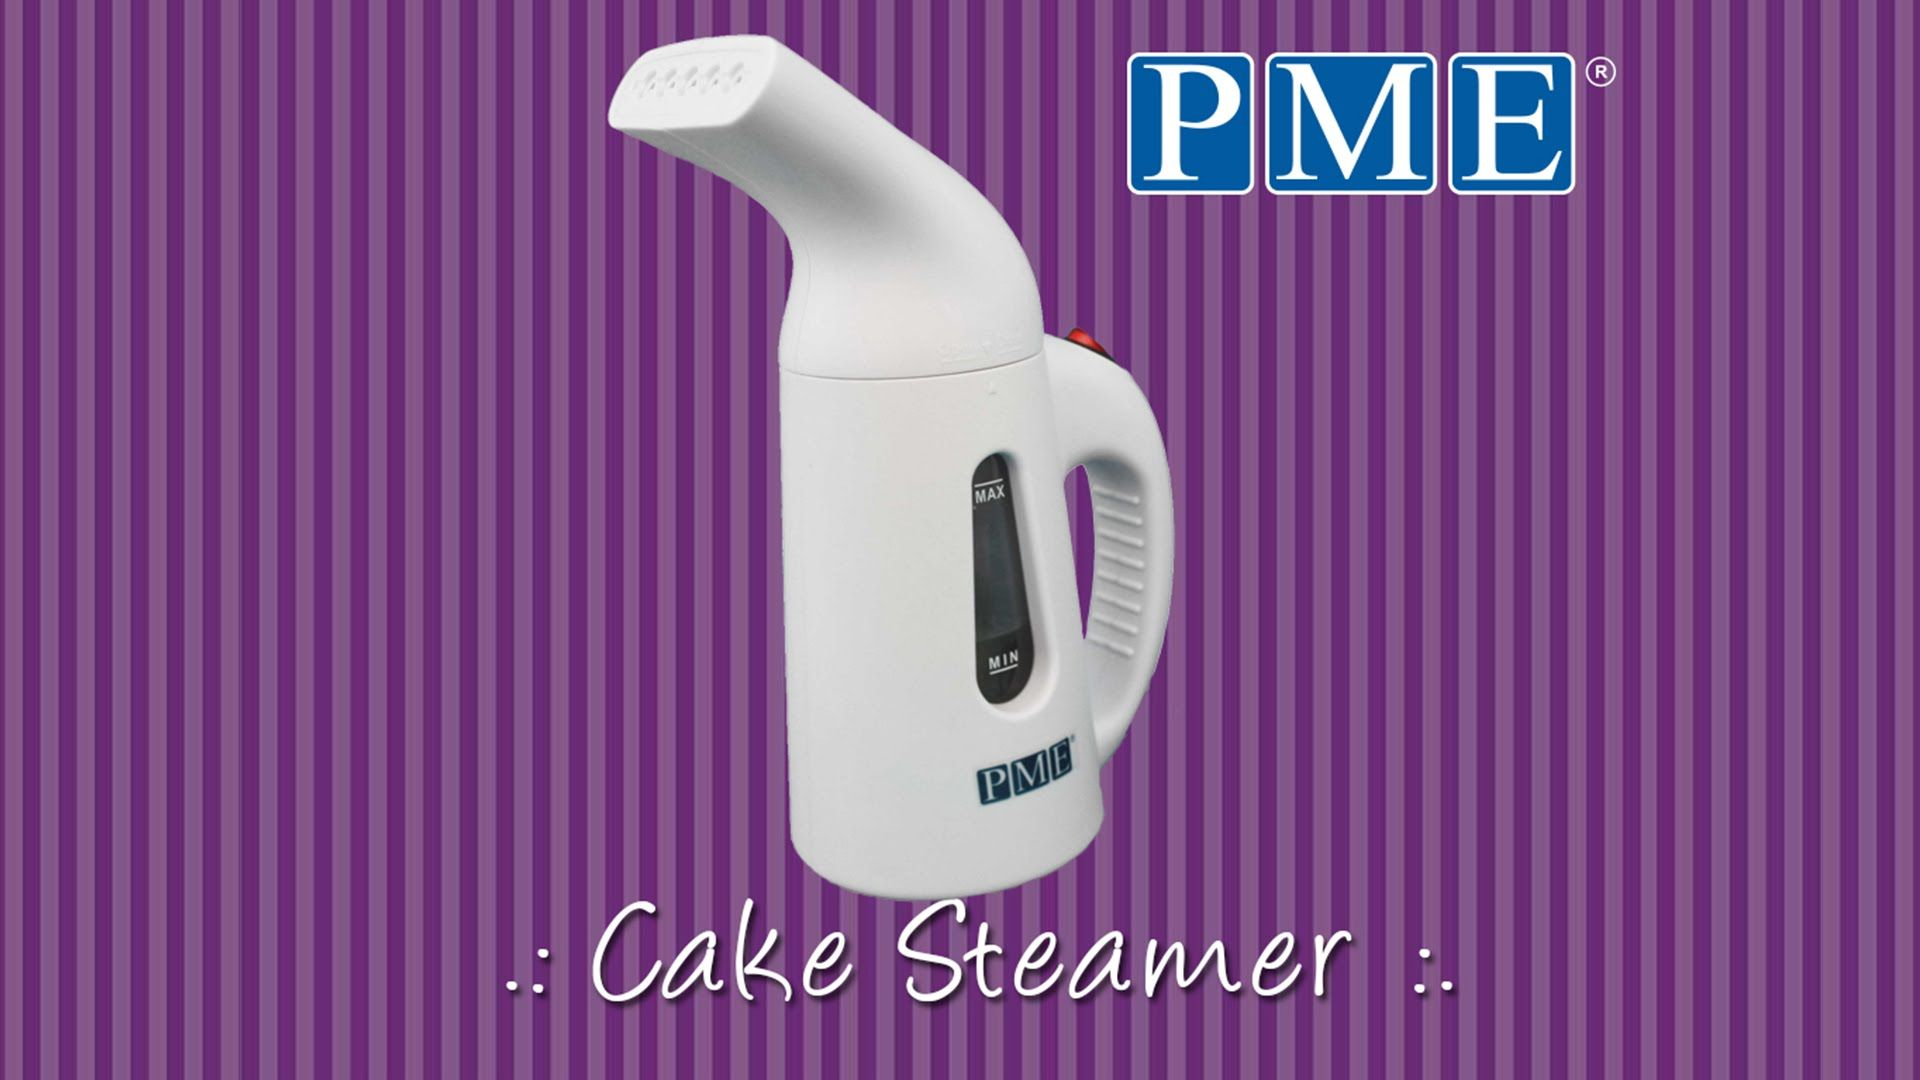 How to Use .: PME Cake Steamer | FMM, PME, SWEETWISE ...